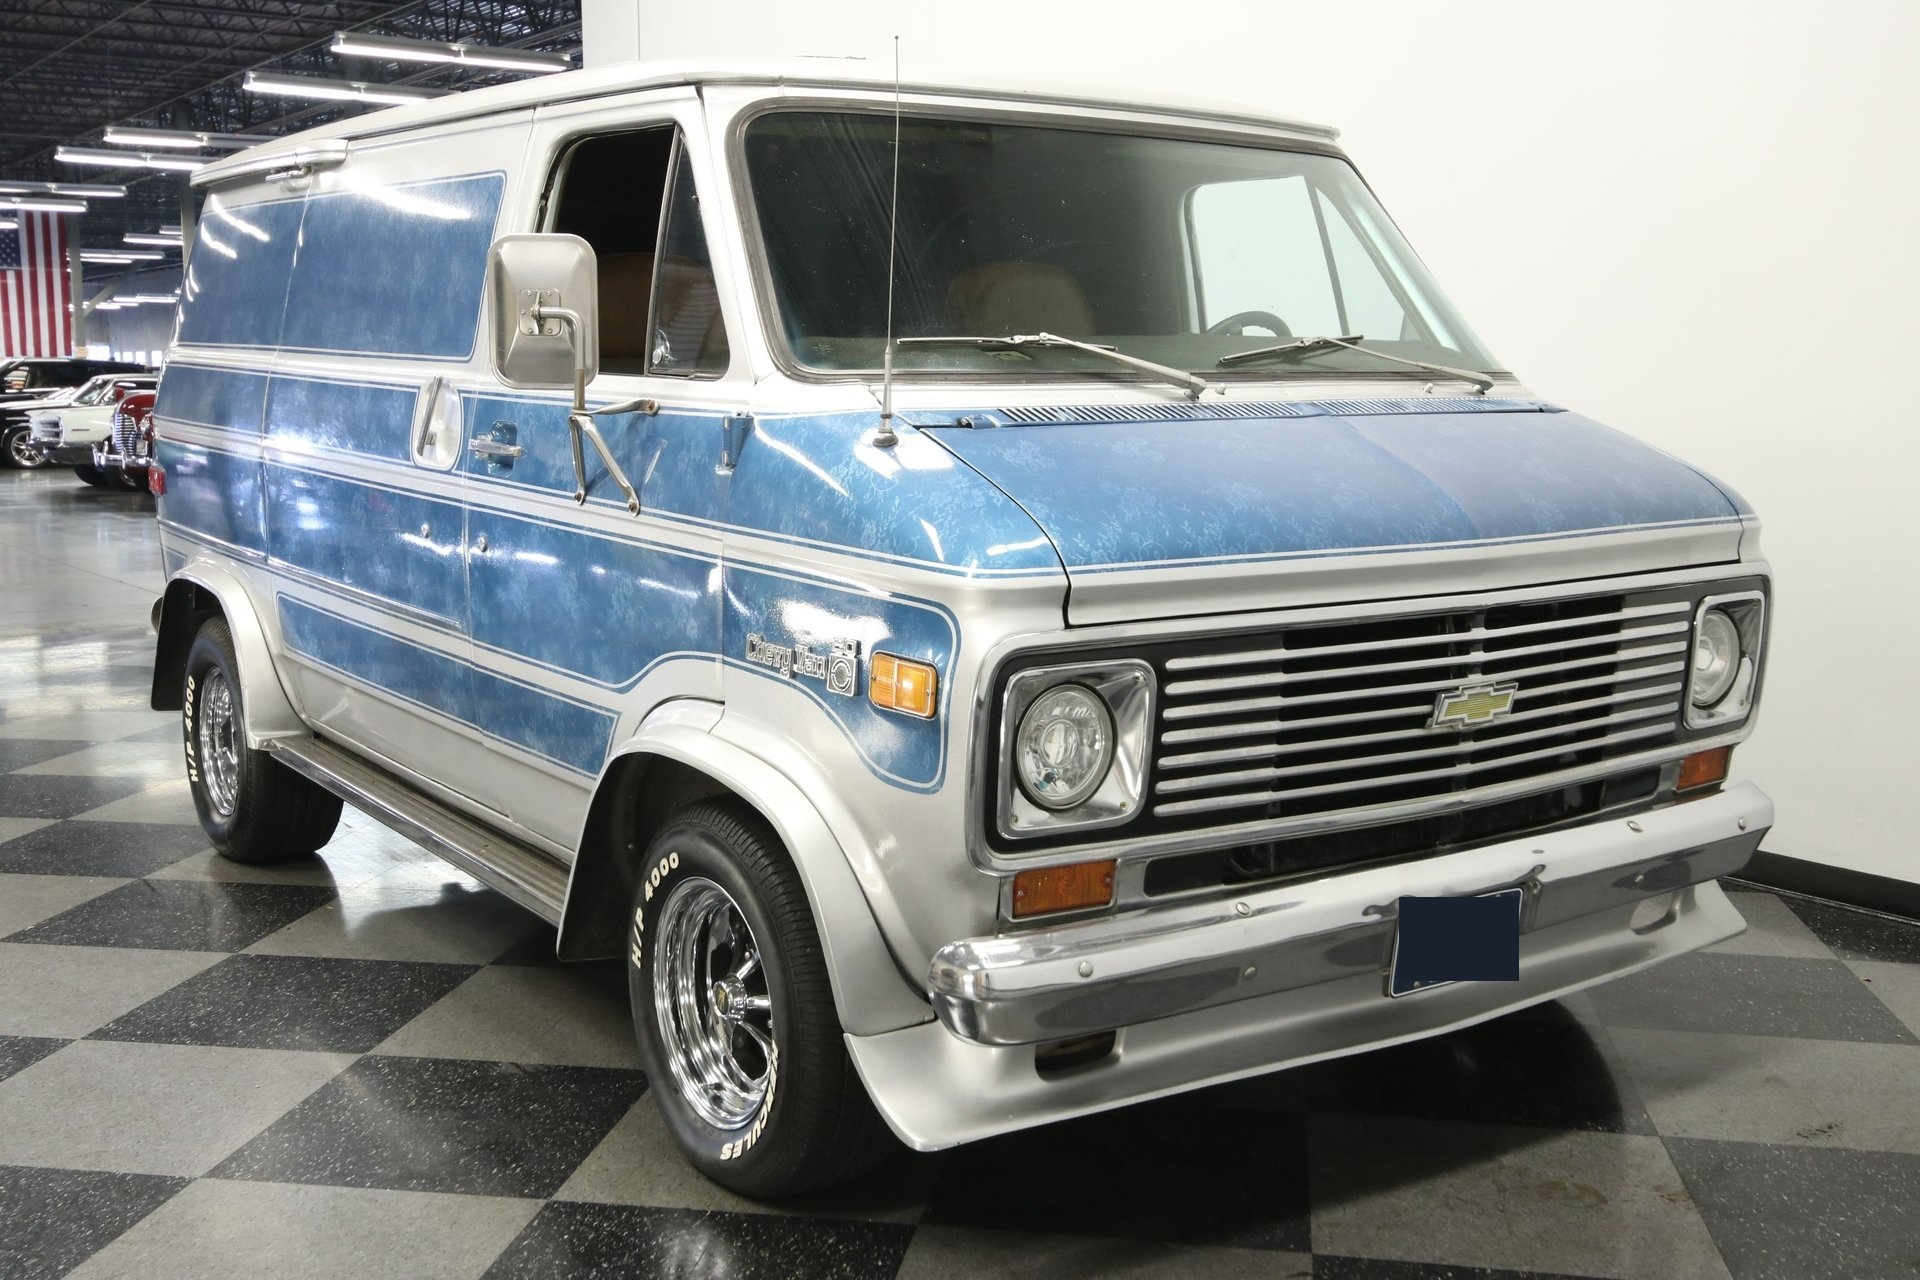 1977-chevrolet-g20-shorty-van-rddj2